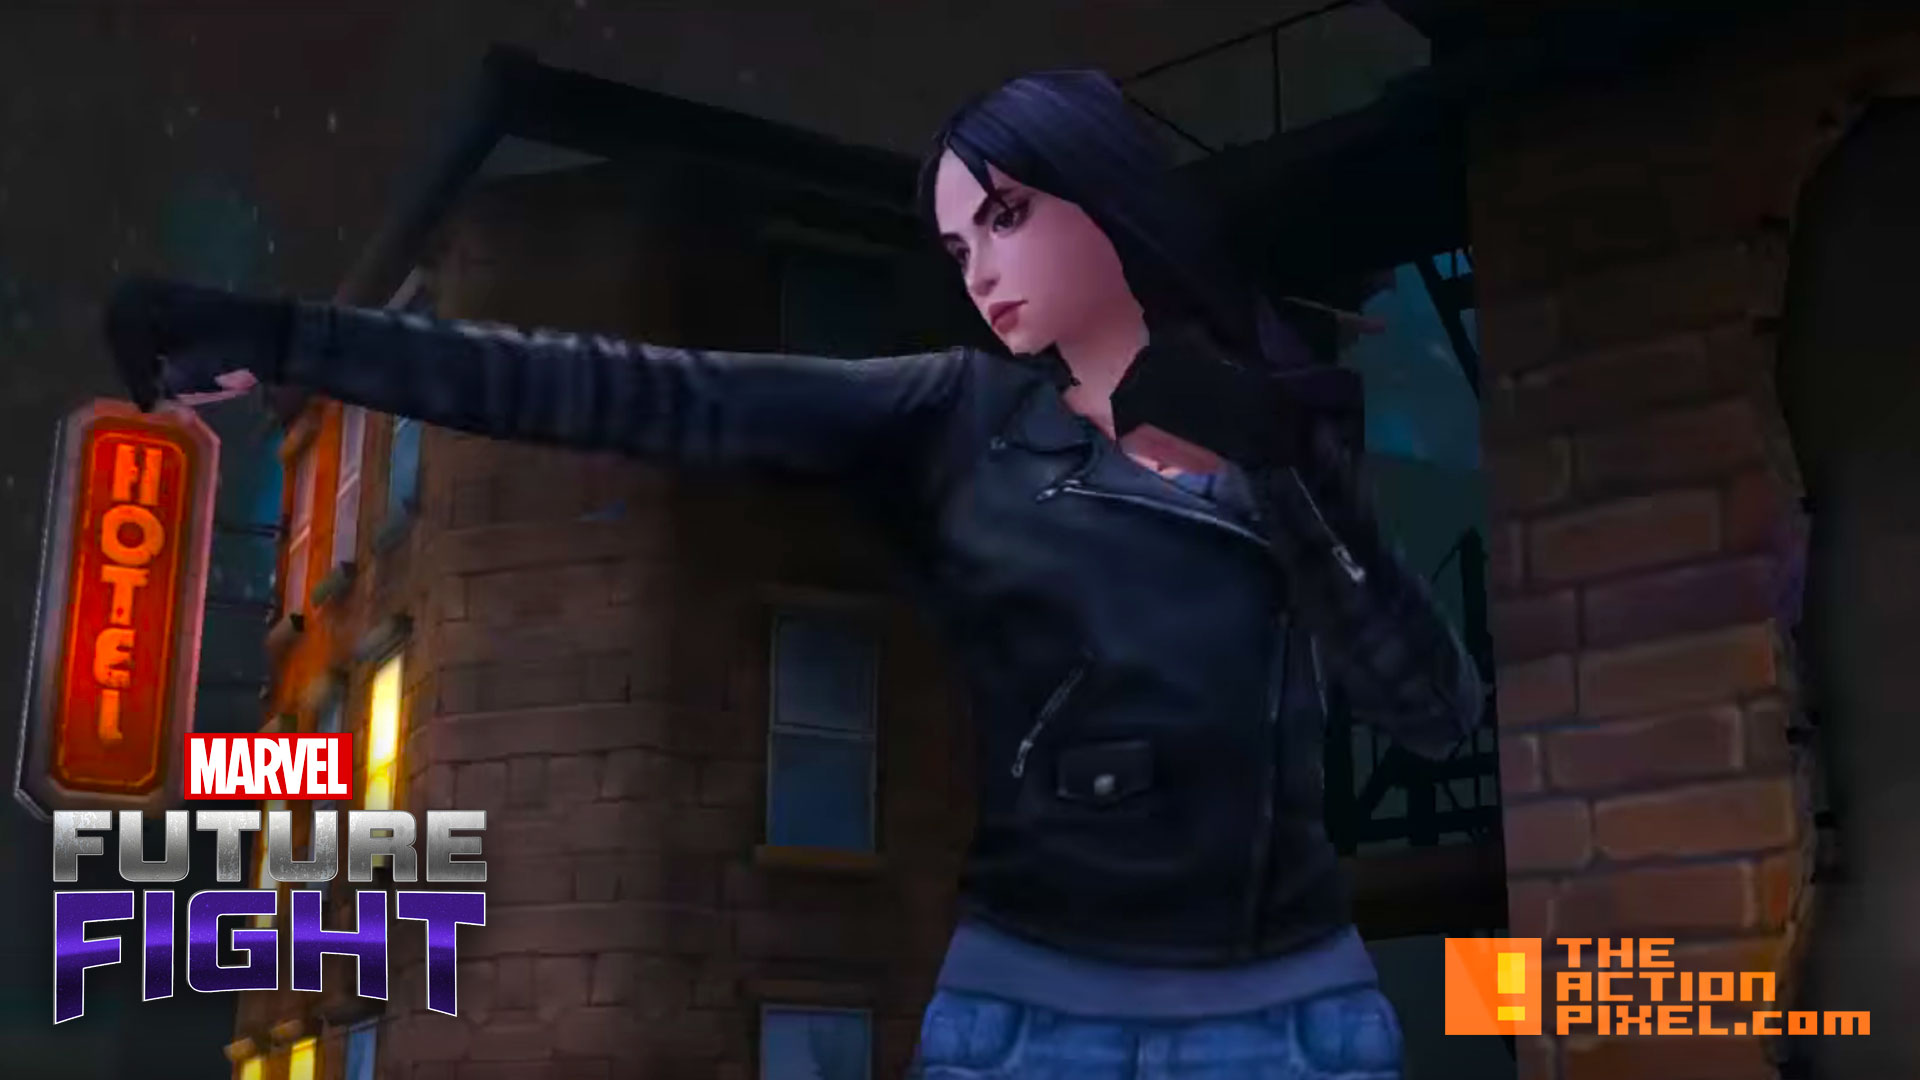 jessica jones. marvel future fight. the action pixel. @theactionpixel. netmarble